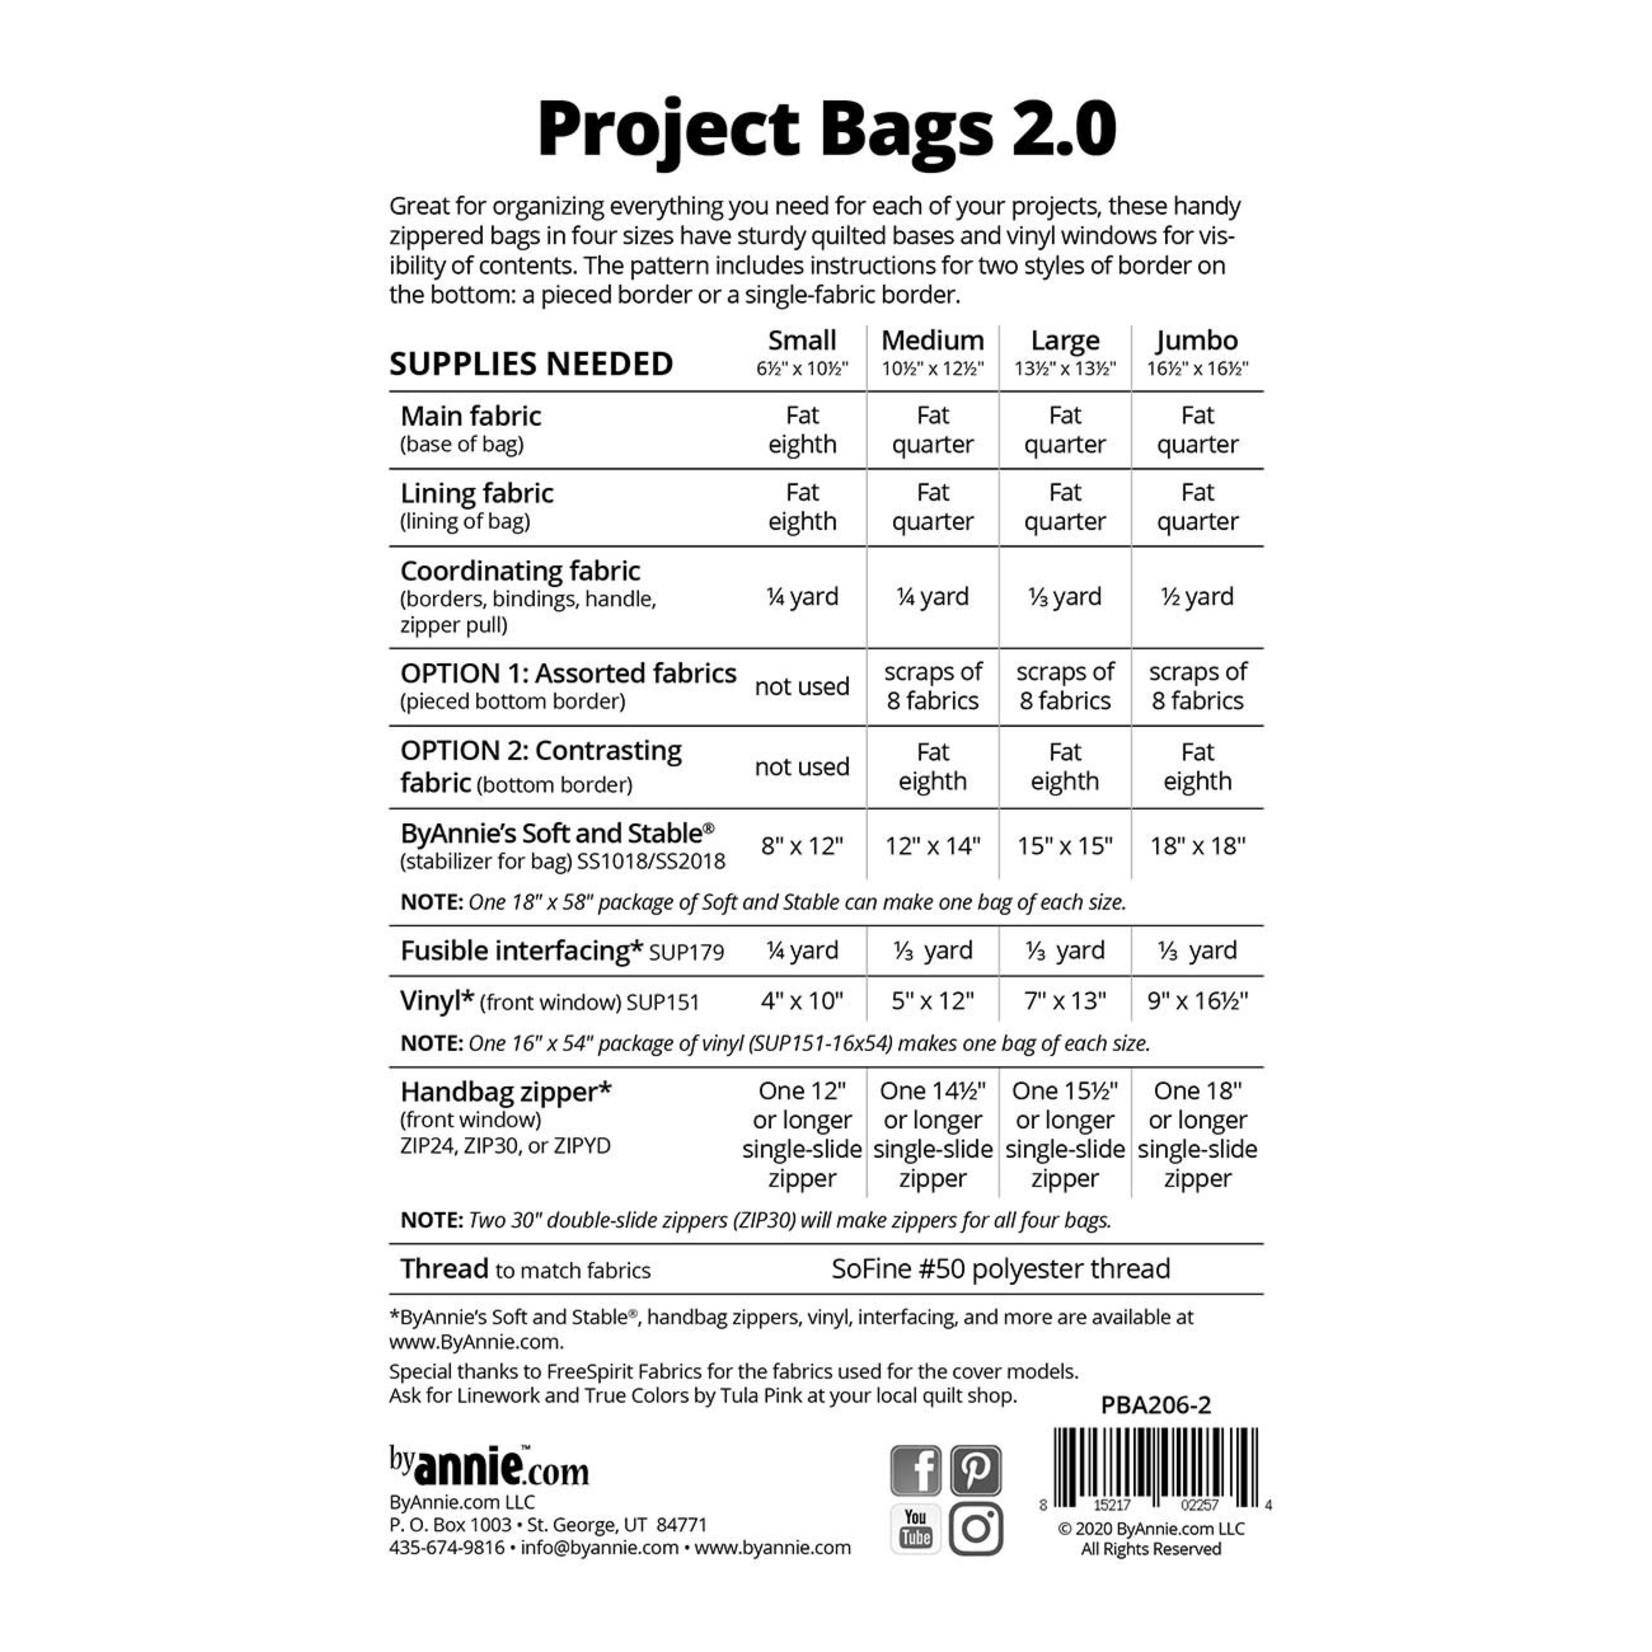 By Annie Project Bags 2.0